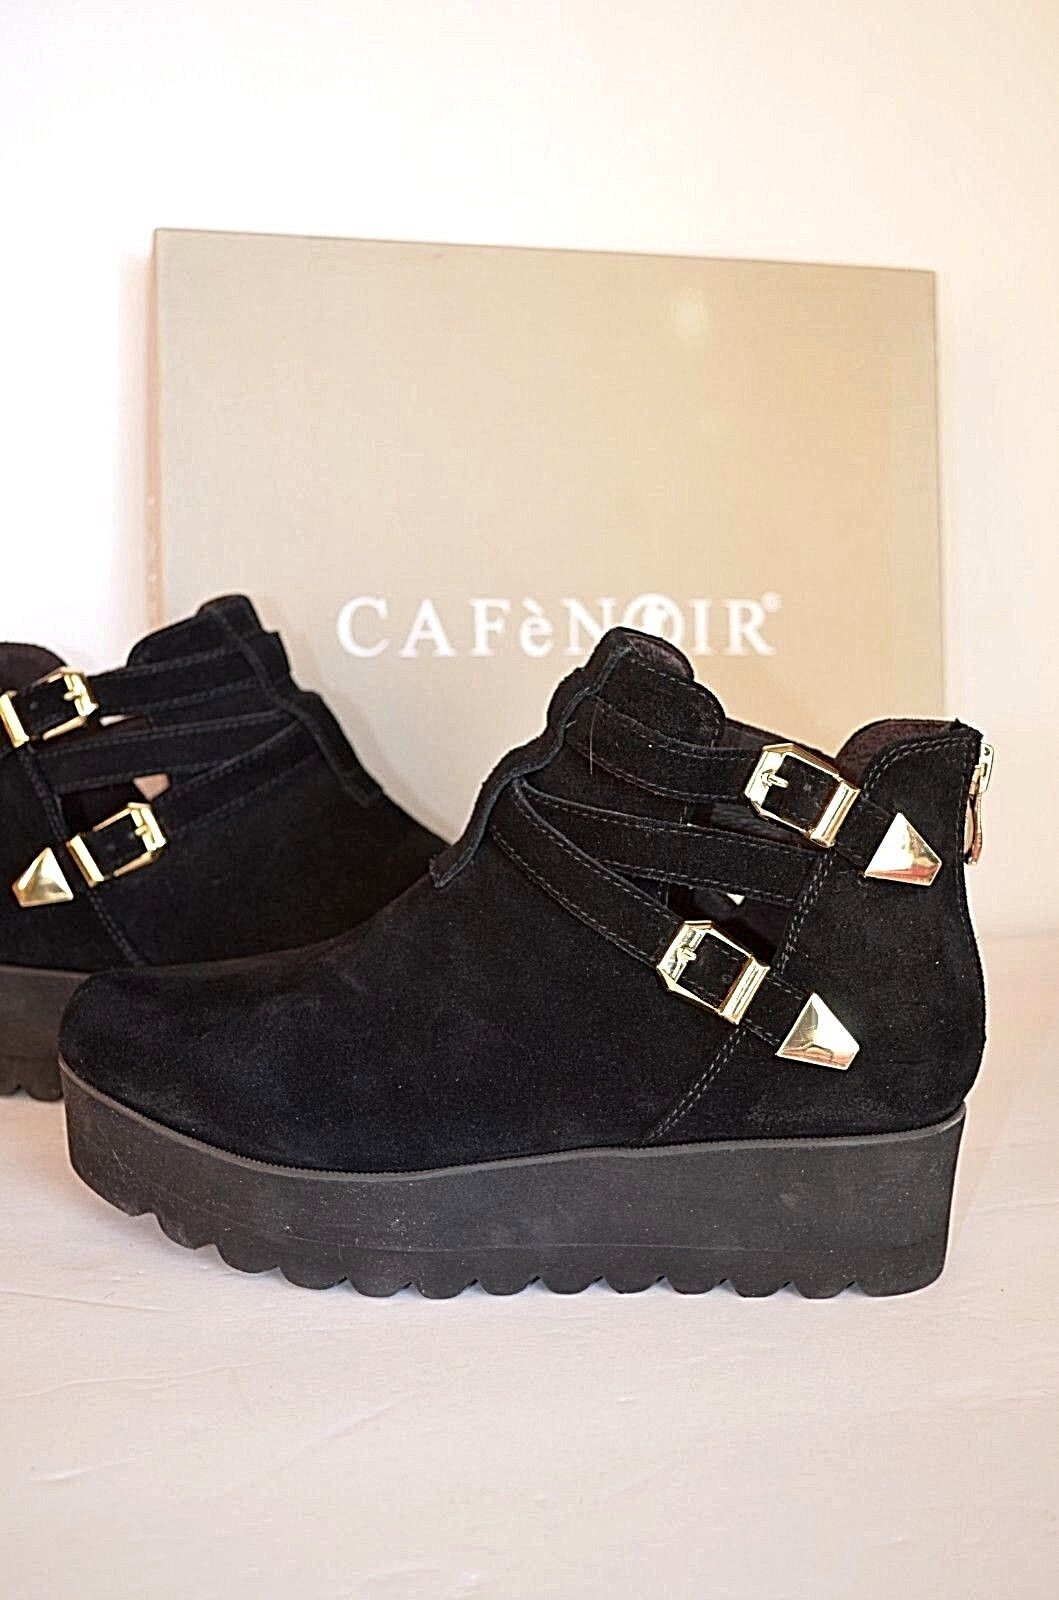 Womens Ankle Boots Leather Wedge Cafeblack  Chelsea Platform Rubber Sole S 6